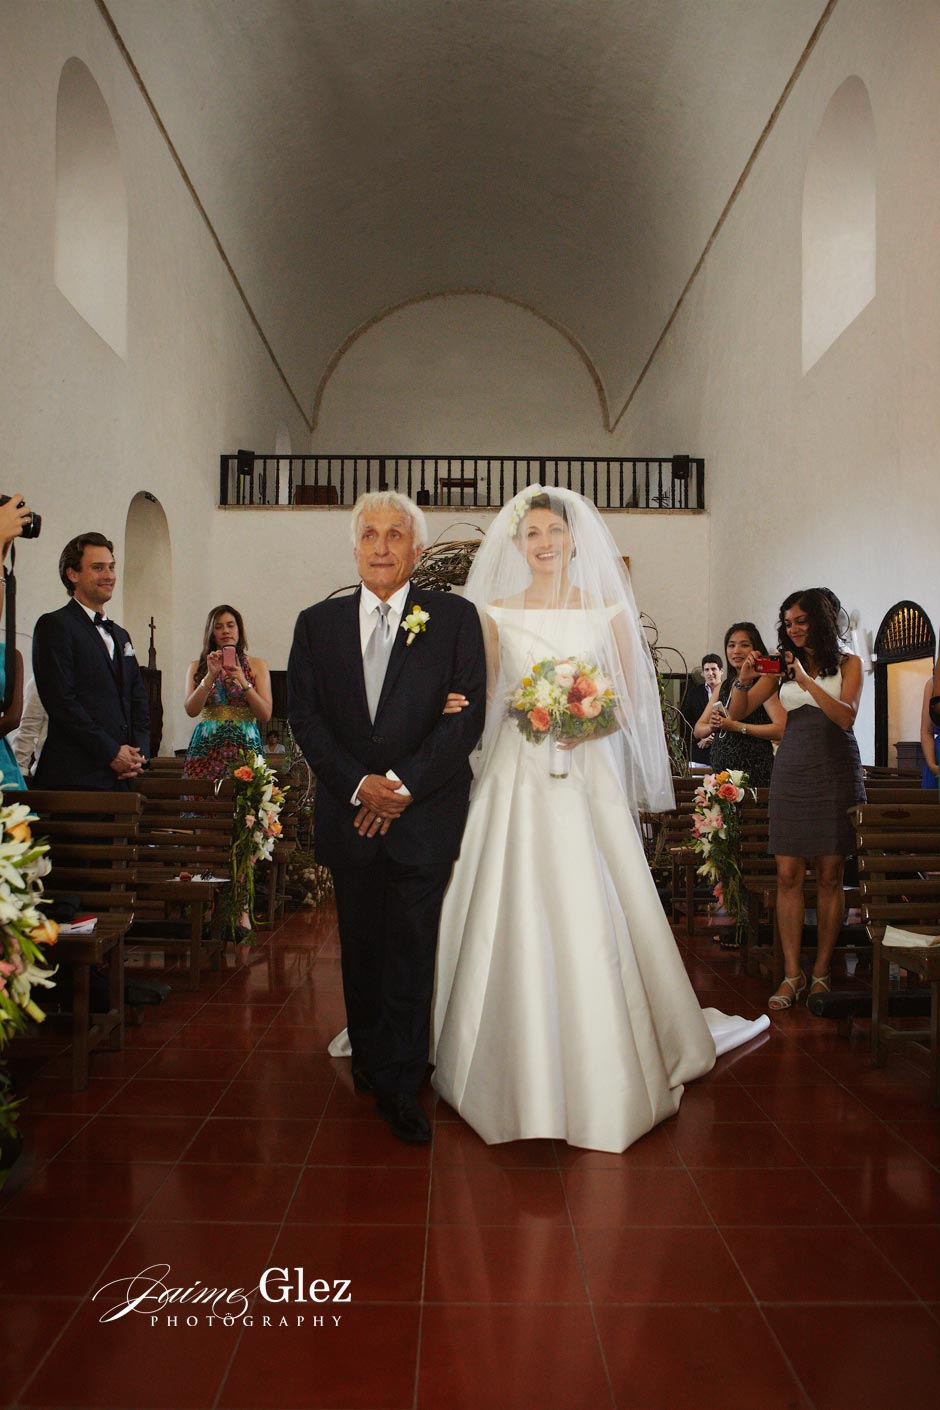 Bride and father walking down the aisle so happy at Iglesia de las Monjas in Mérida.